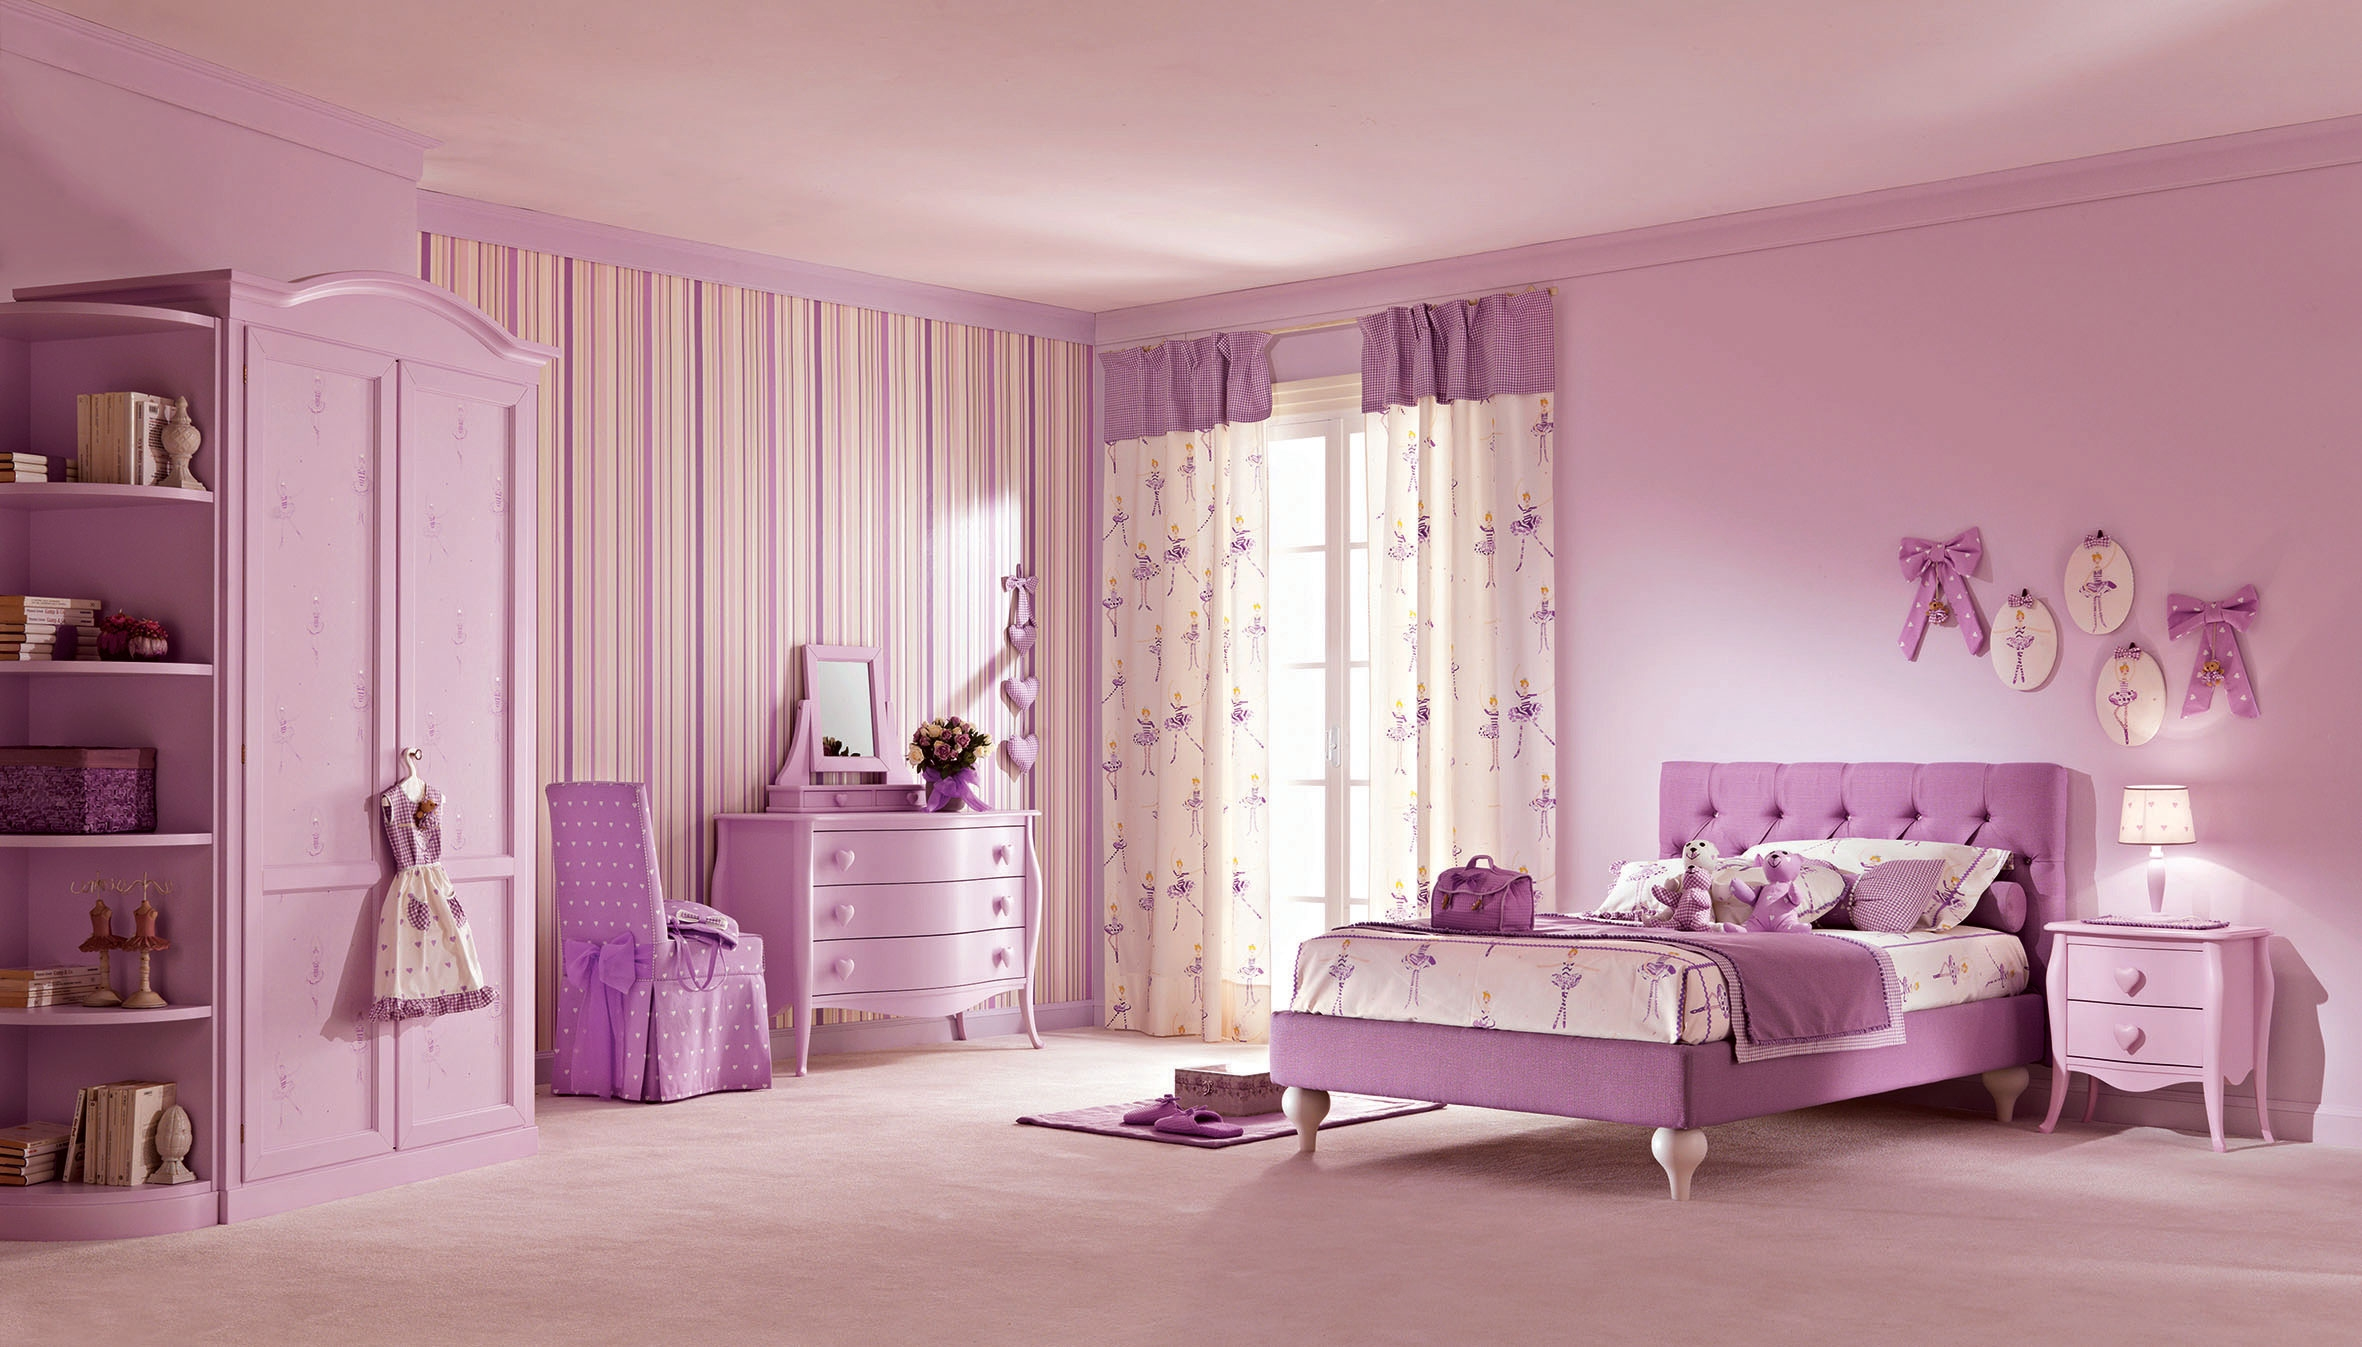 Beautiful chambre princesse ado contemporary design - Deco princesse chambre ...